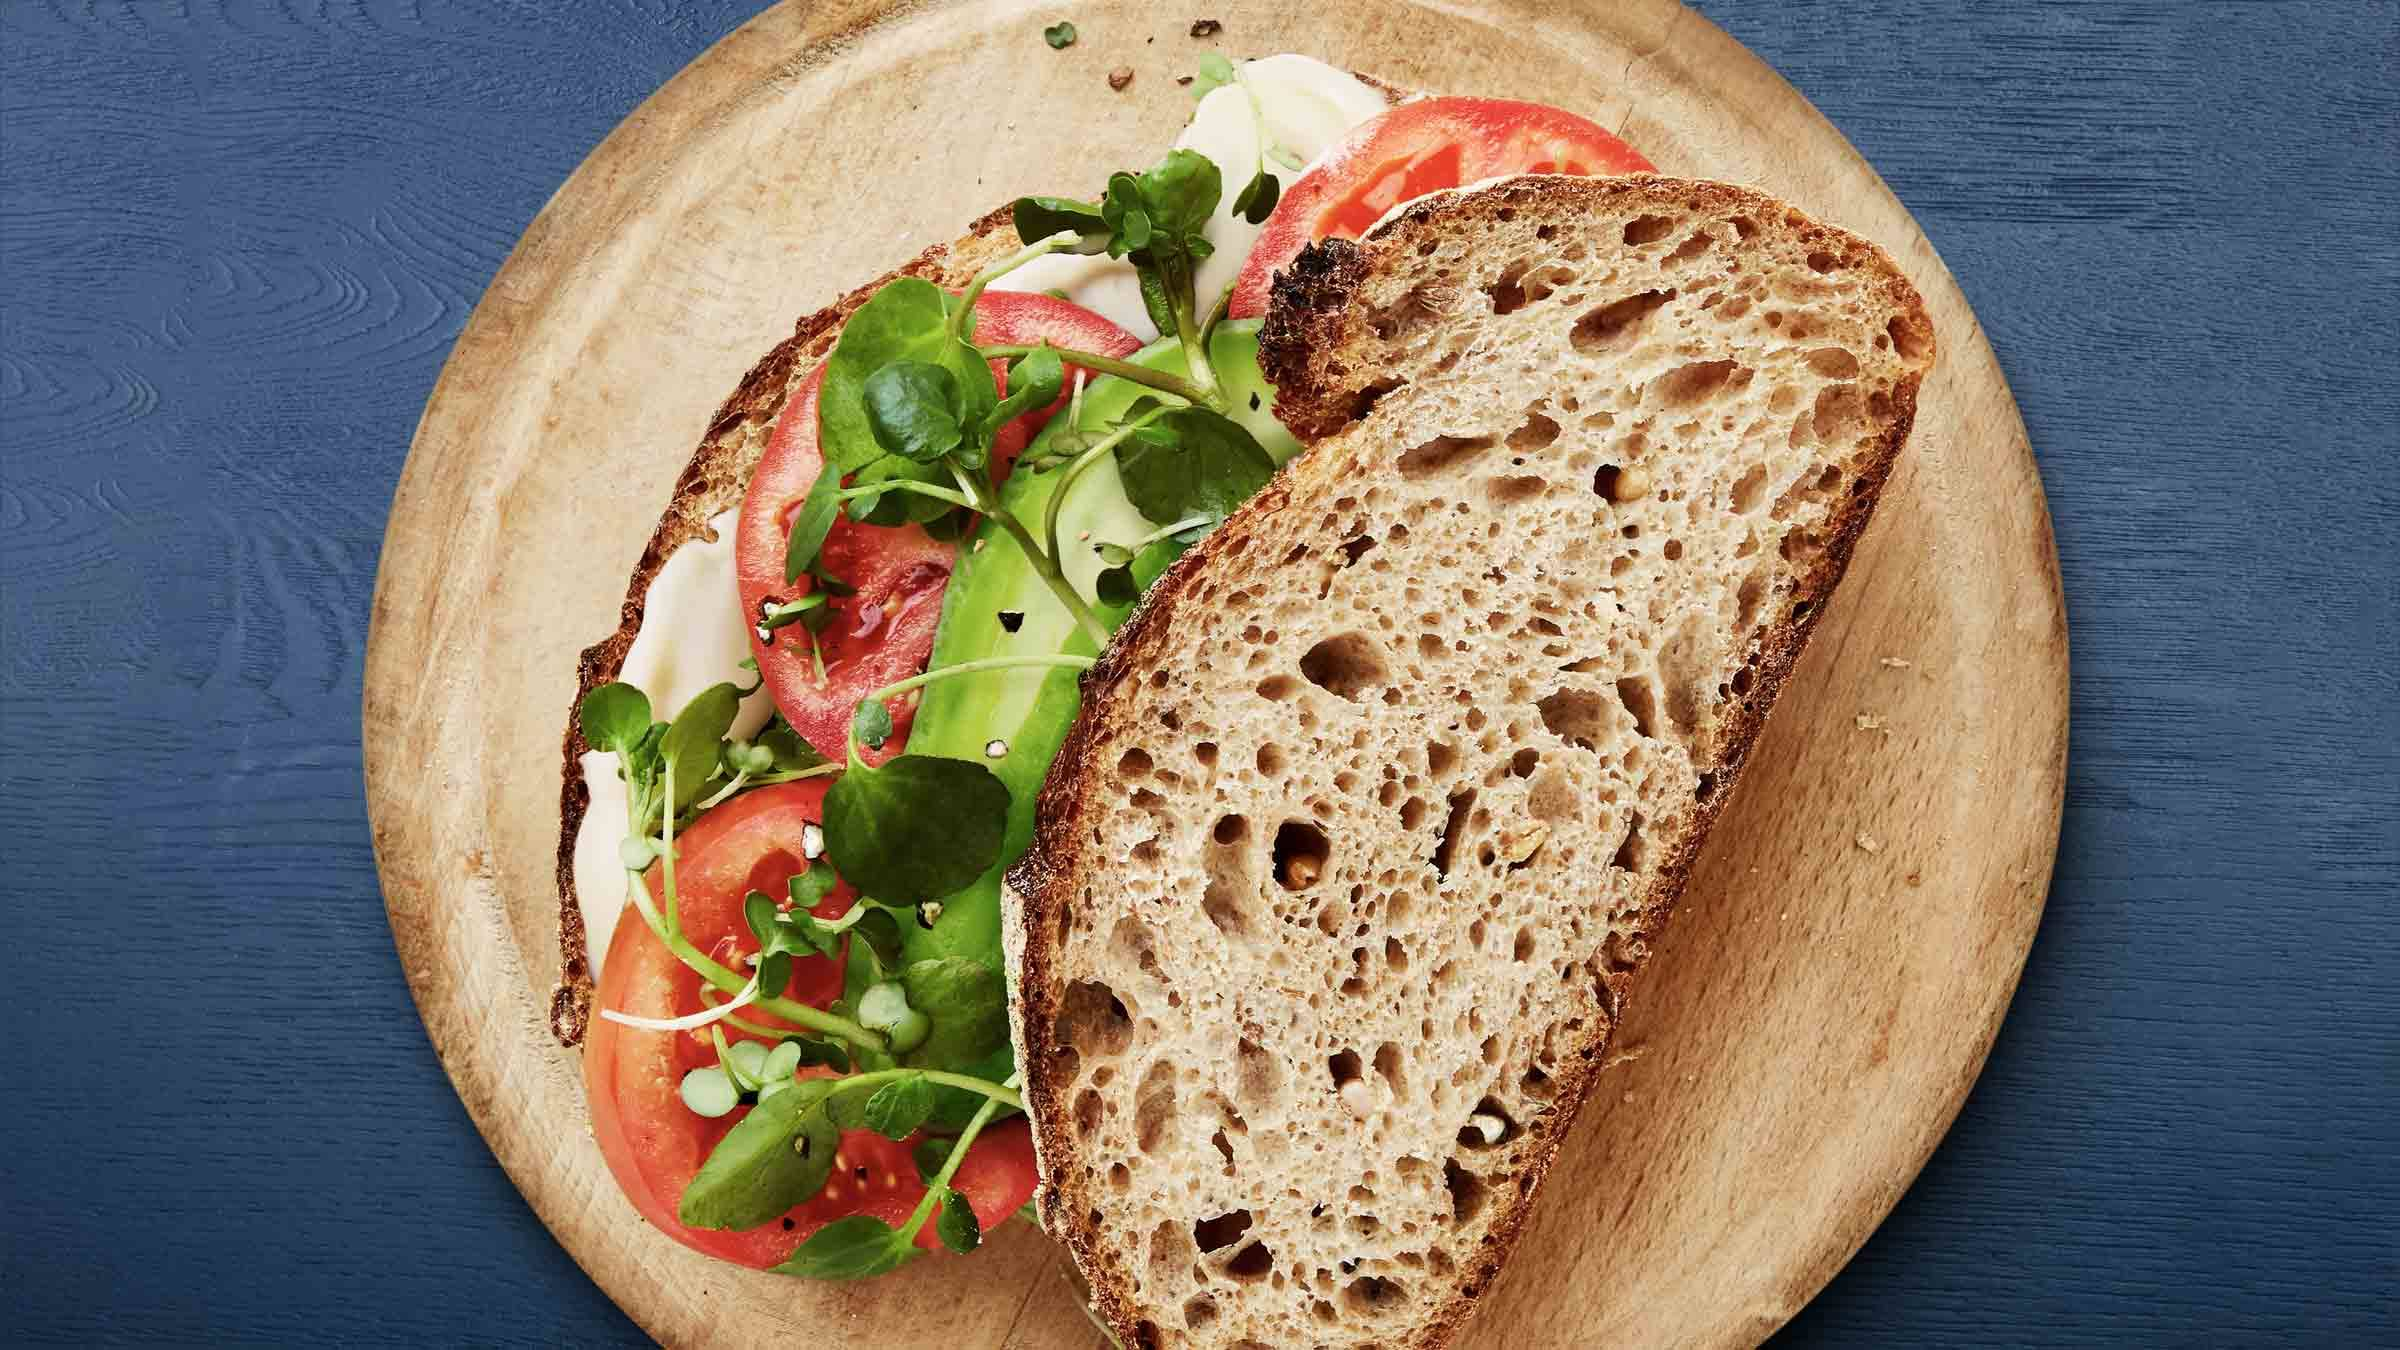 Avocado, Tomato, & Watercress Sandwich Recipe